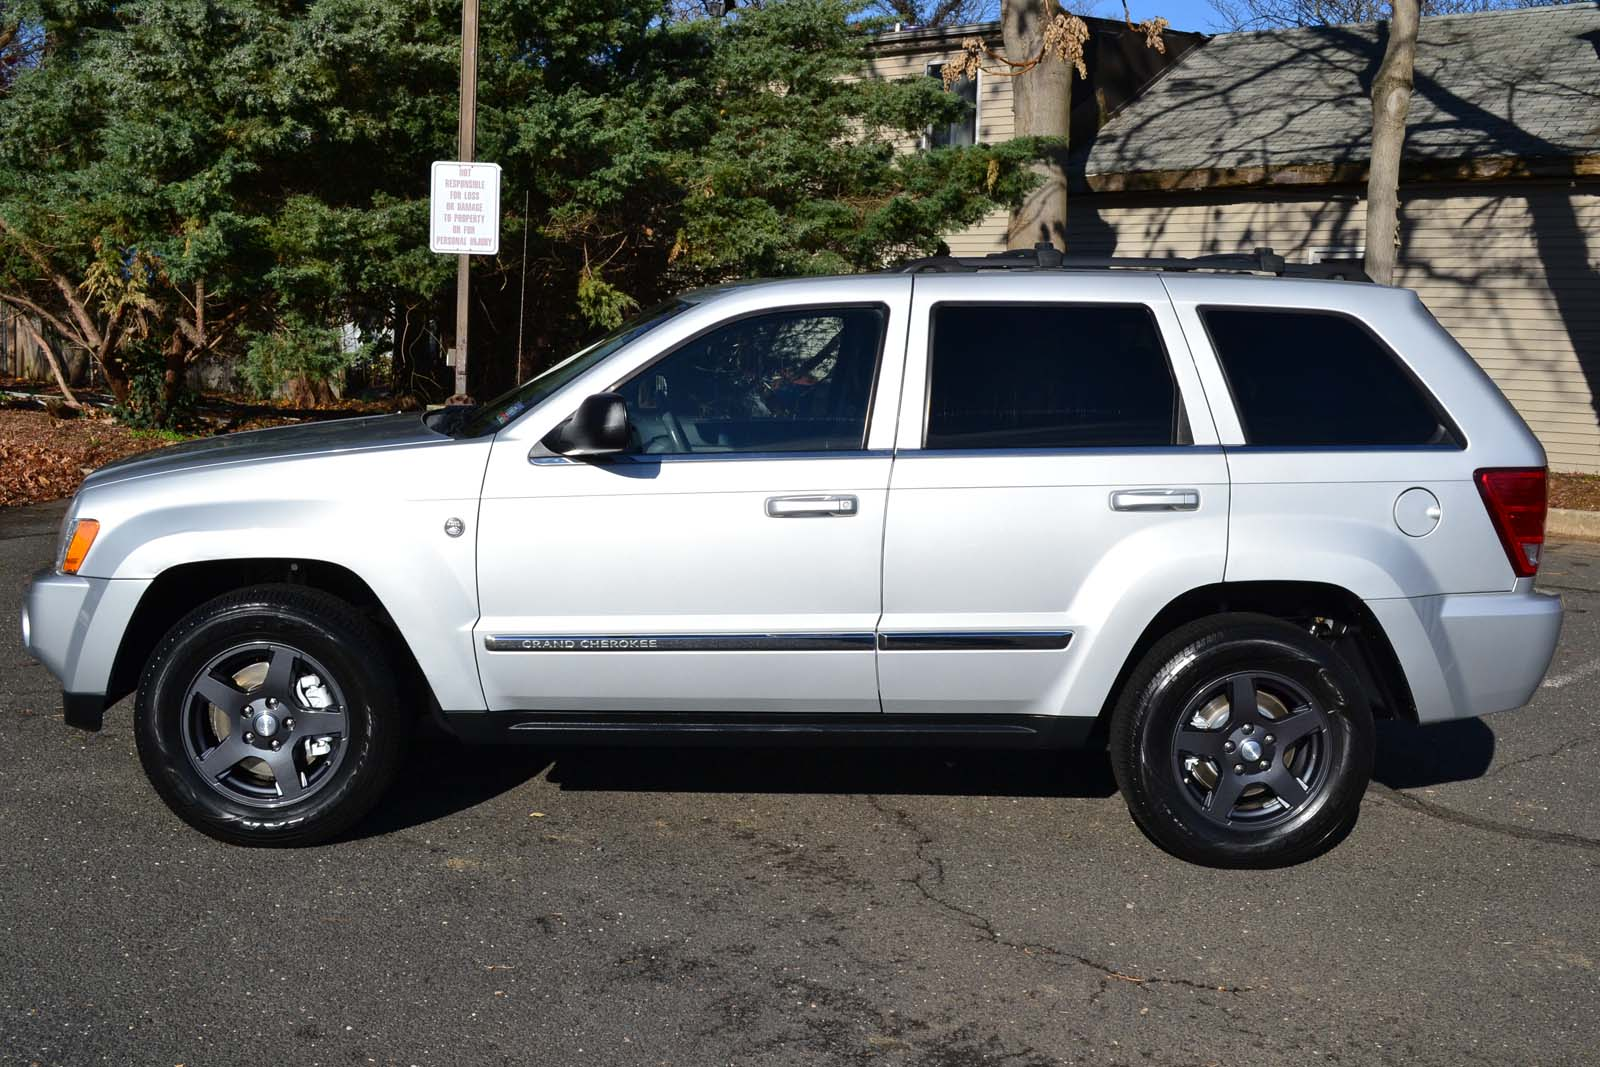 Jeep Cherokee Used Nj 2007 JEEP GRAND CHEROKEE LIMITED - Pre-Owned